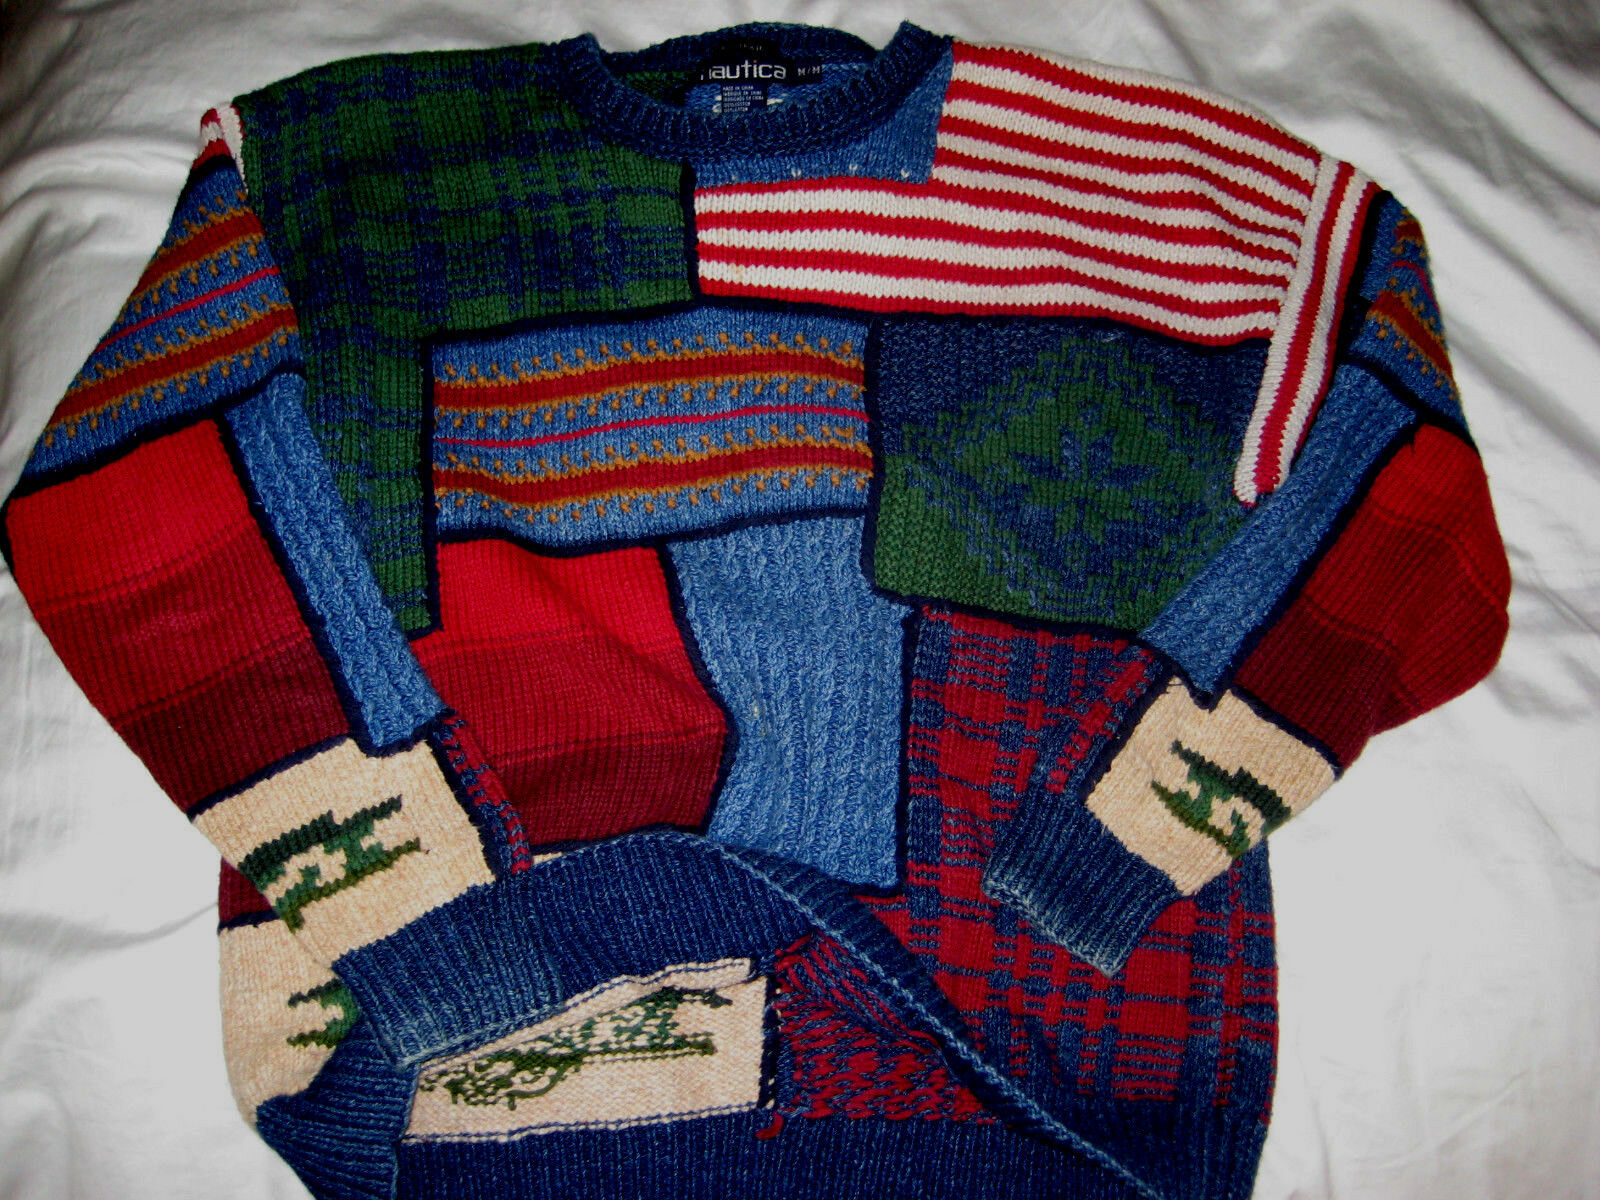 VTG NAUTICA HAND KNIT FOLK ART USA AMERICAN FLAG COTTON CREW SWEATER -NICE  - M